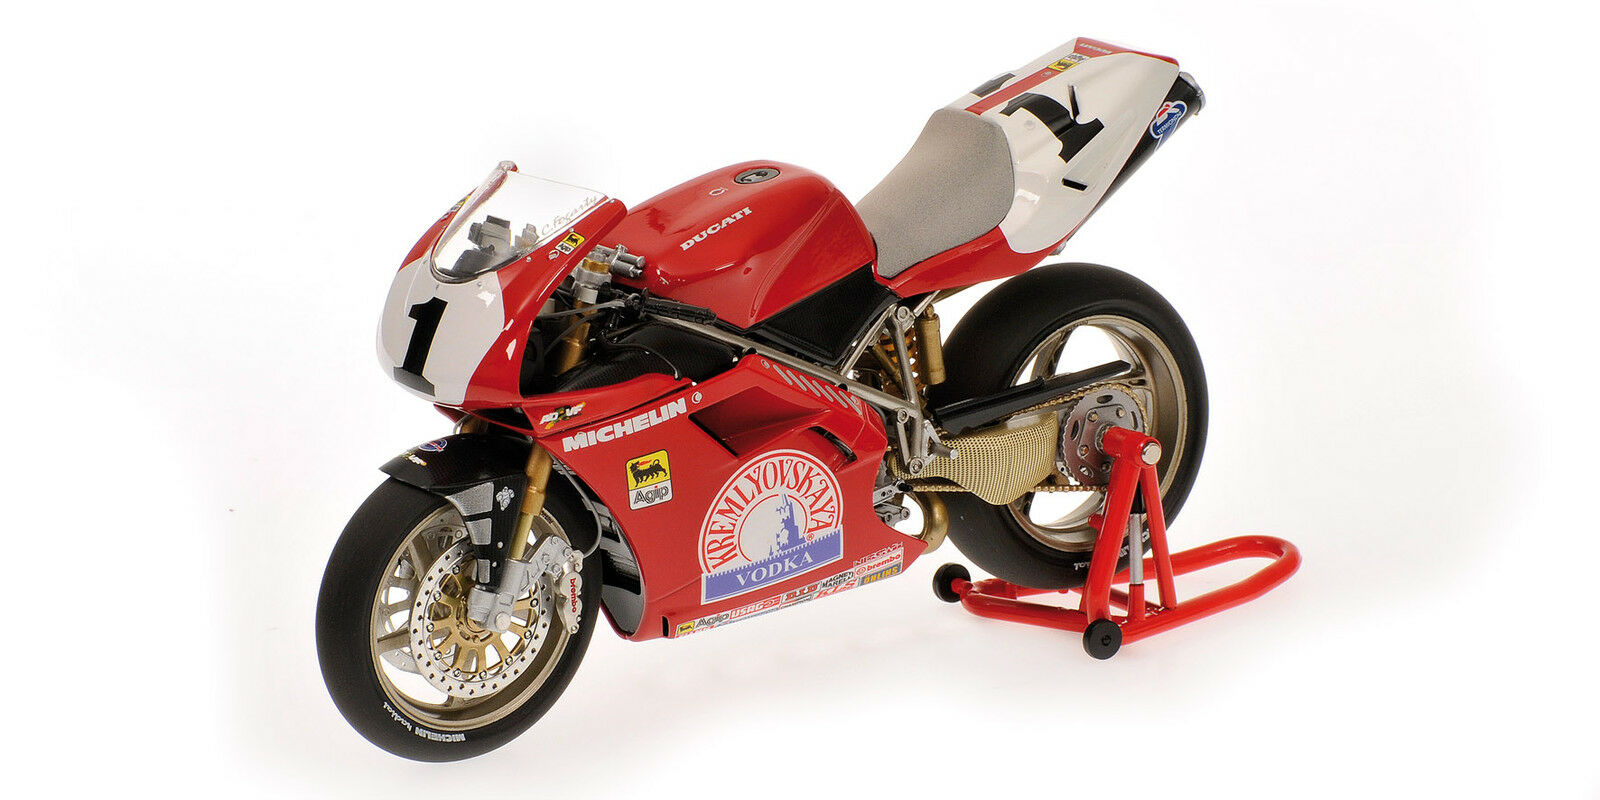 Minichamps Ducati 916 1995 1:12  1 Carl Fogarty  GBR  World Champion WSBK